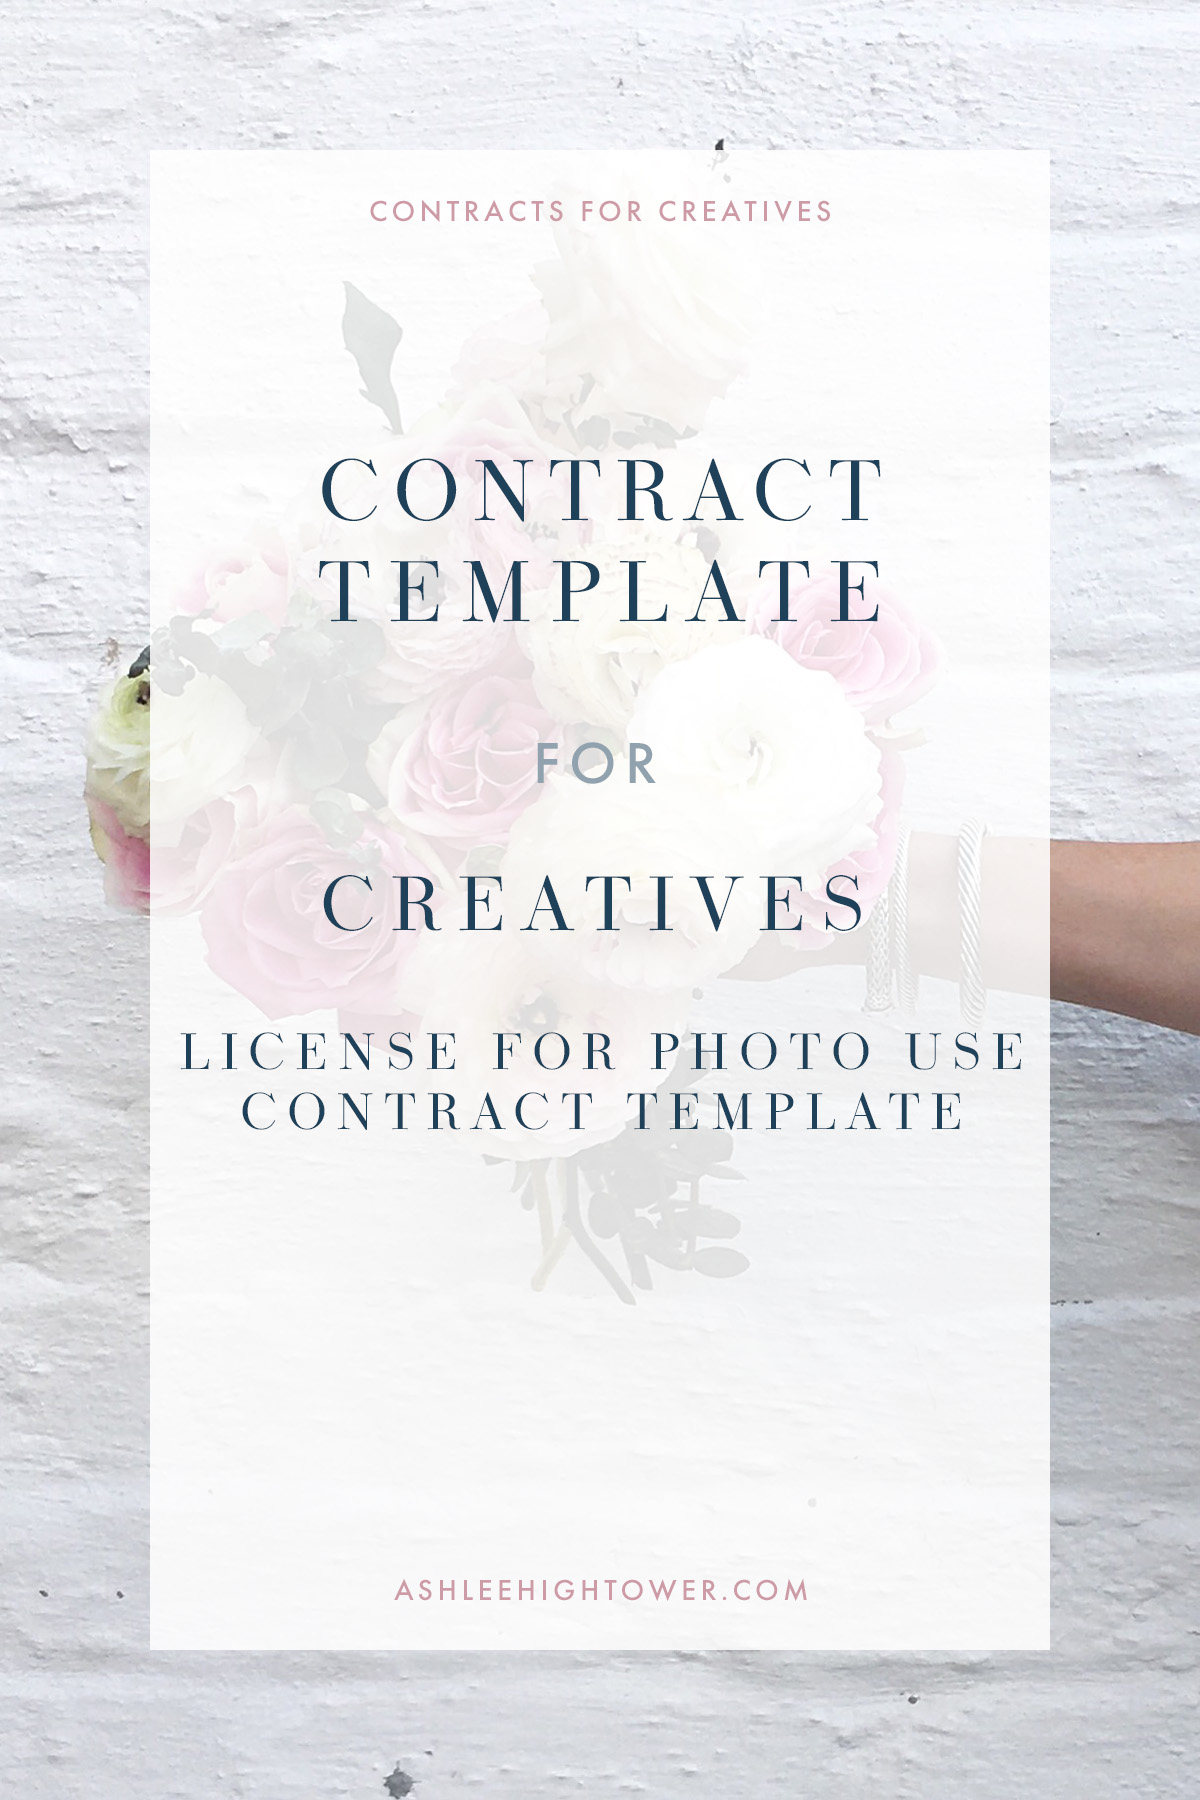 Contracts for Creatives | License for Photo Use | Ashlee Hightower